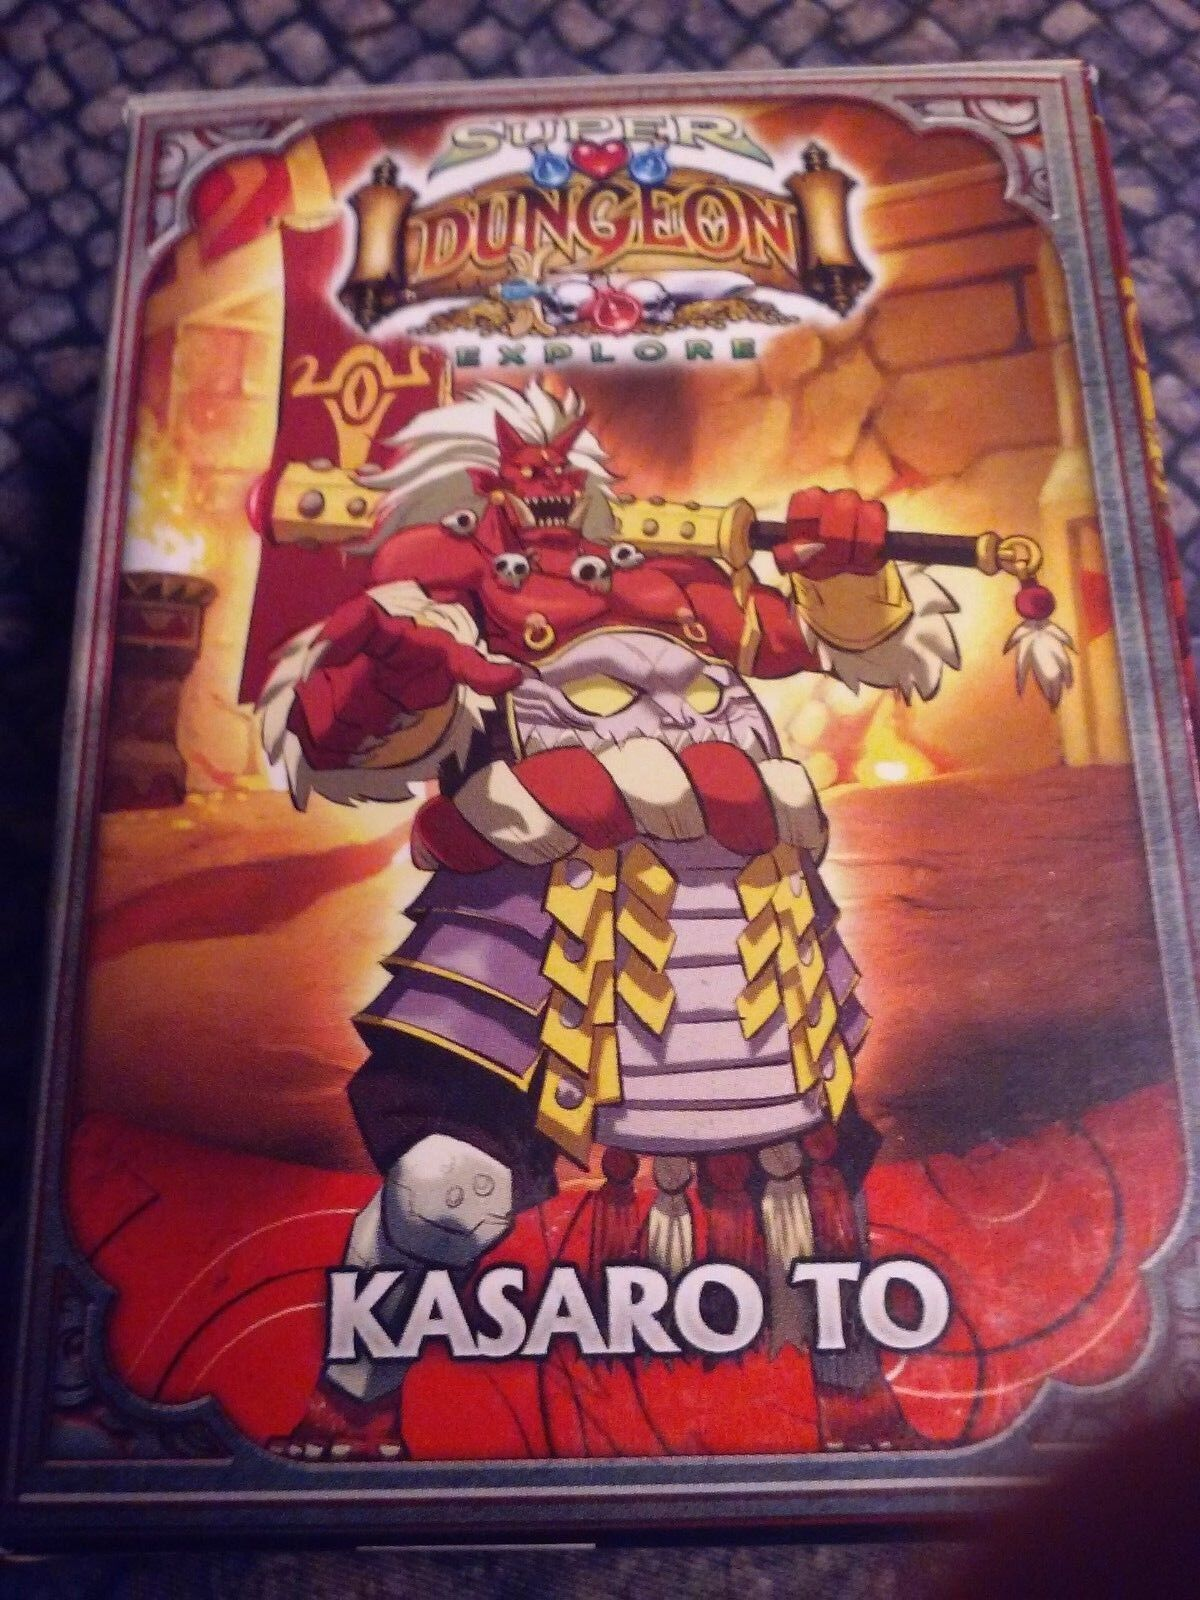 KASARO TO Super Dungeon Explore Relic Knights limited edition promo RARE